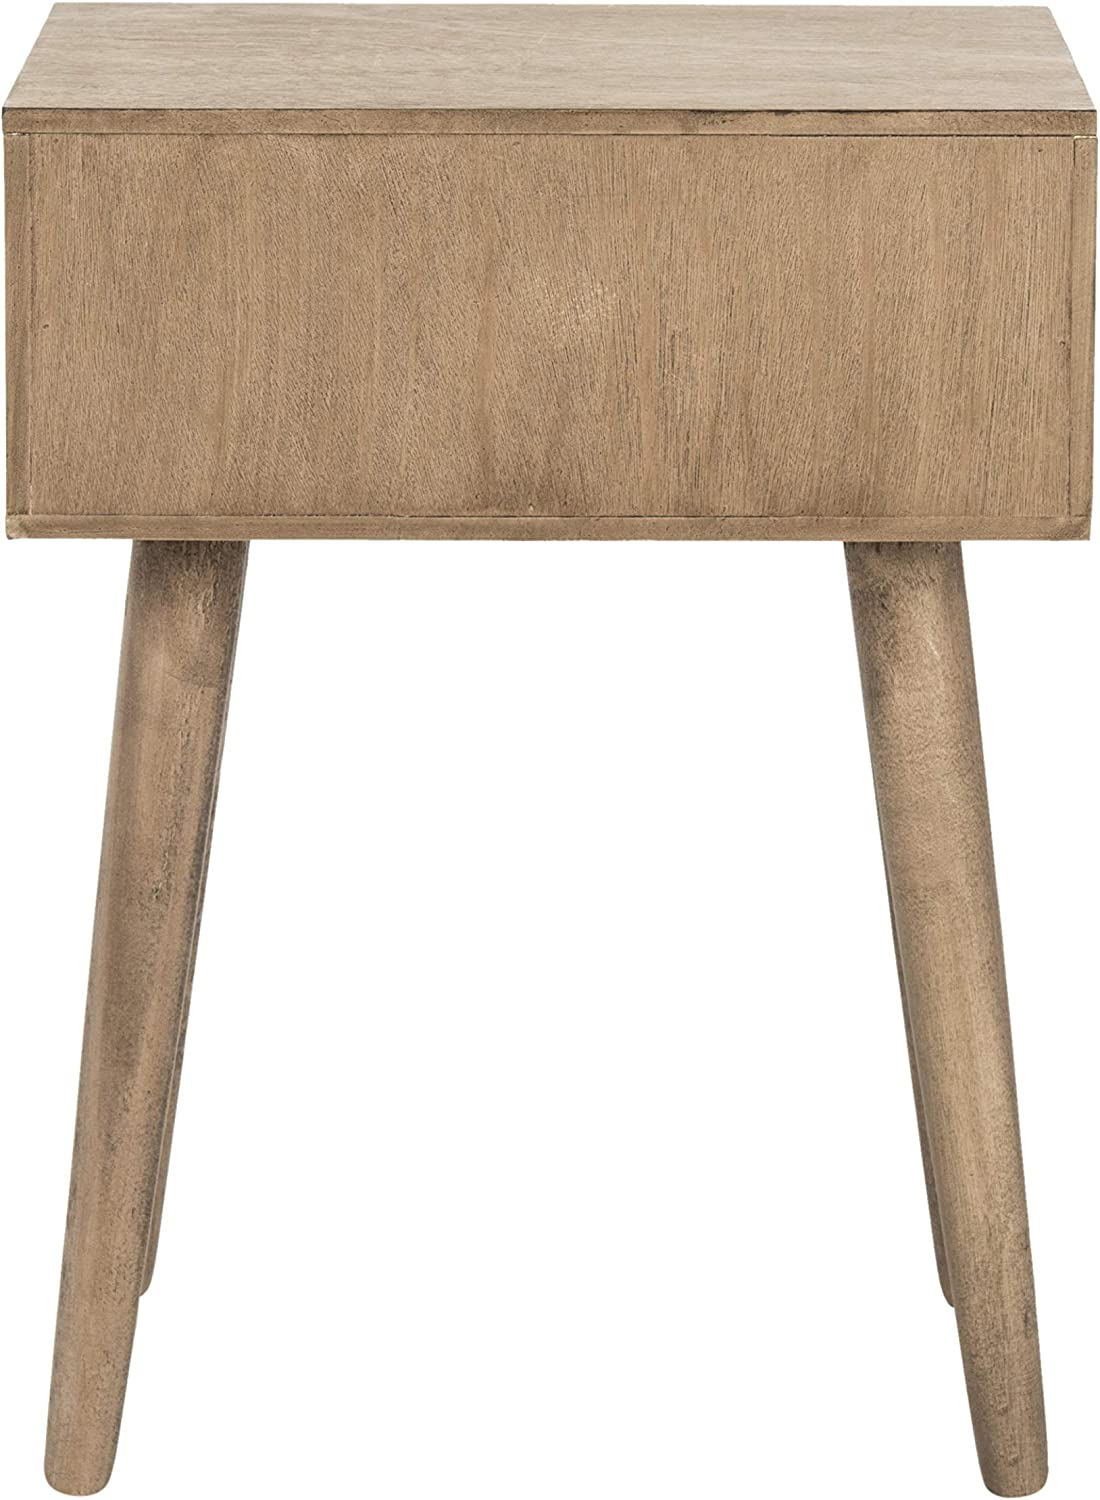 Safavieh Home Lyle Modern Chocolate Accent Table